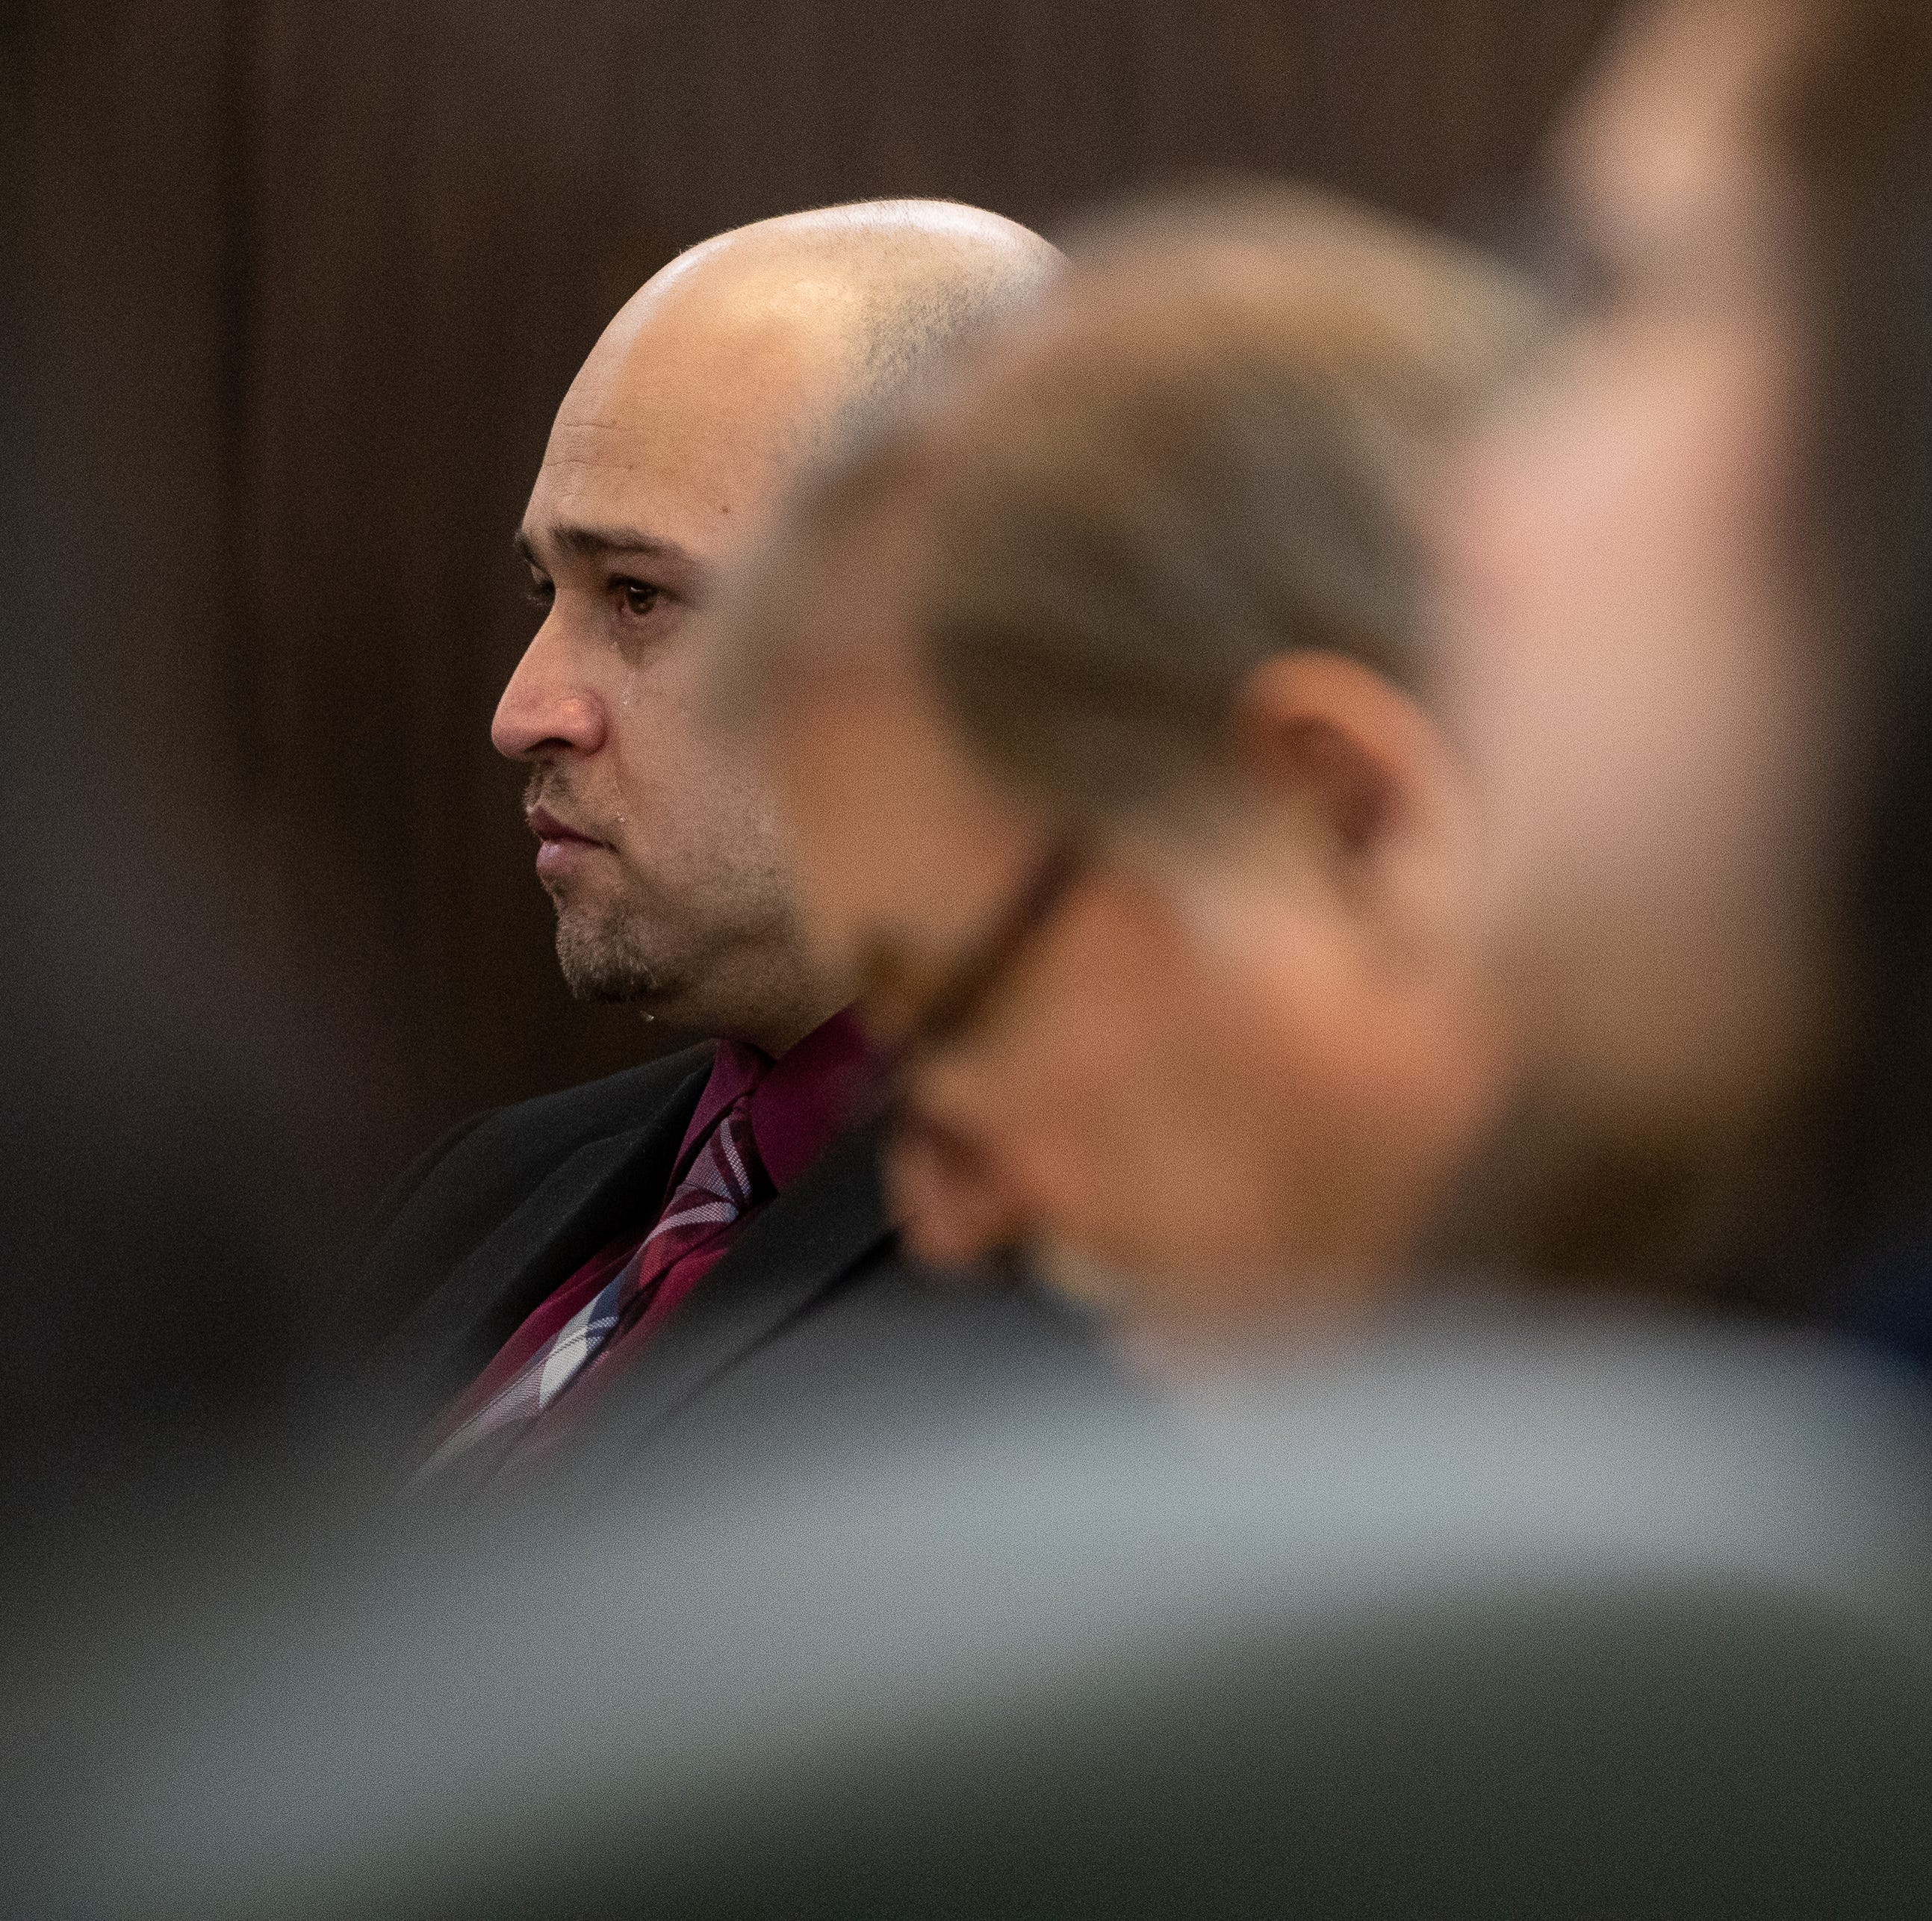 Arturo Garza sentenced to life in prison without parole